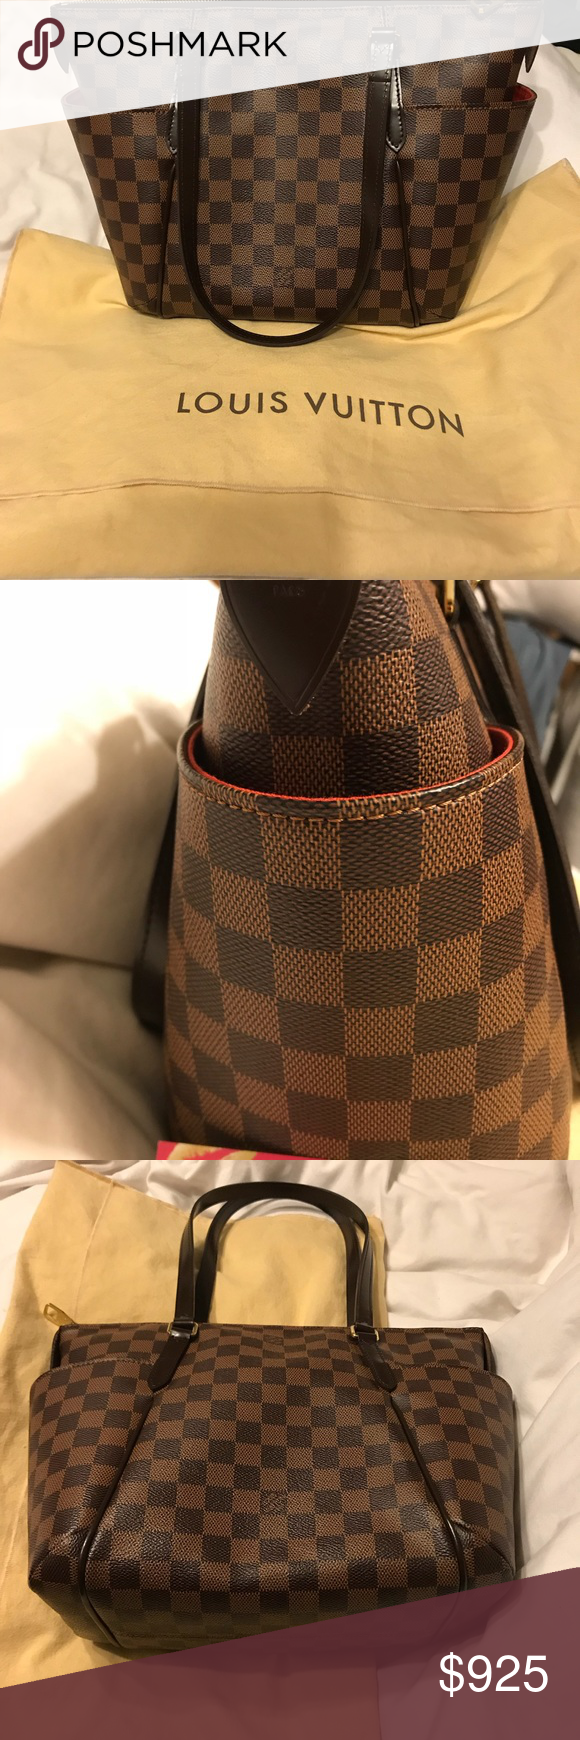 300d27eeb716 Louis Vuitton Totally PM Authentic LOUIS VUITTON Damier Ebene Totally PM.  This stylish tote is